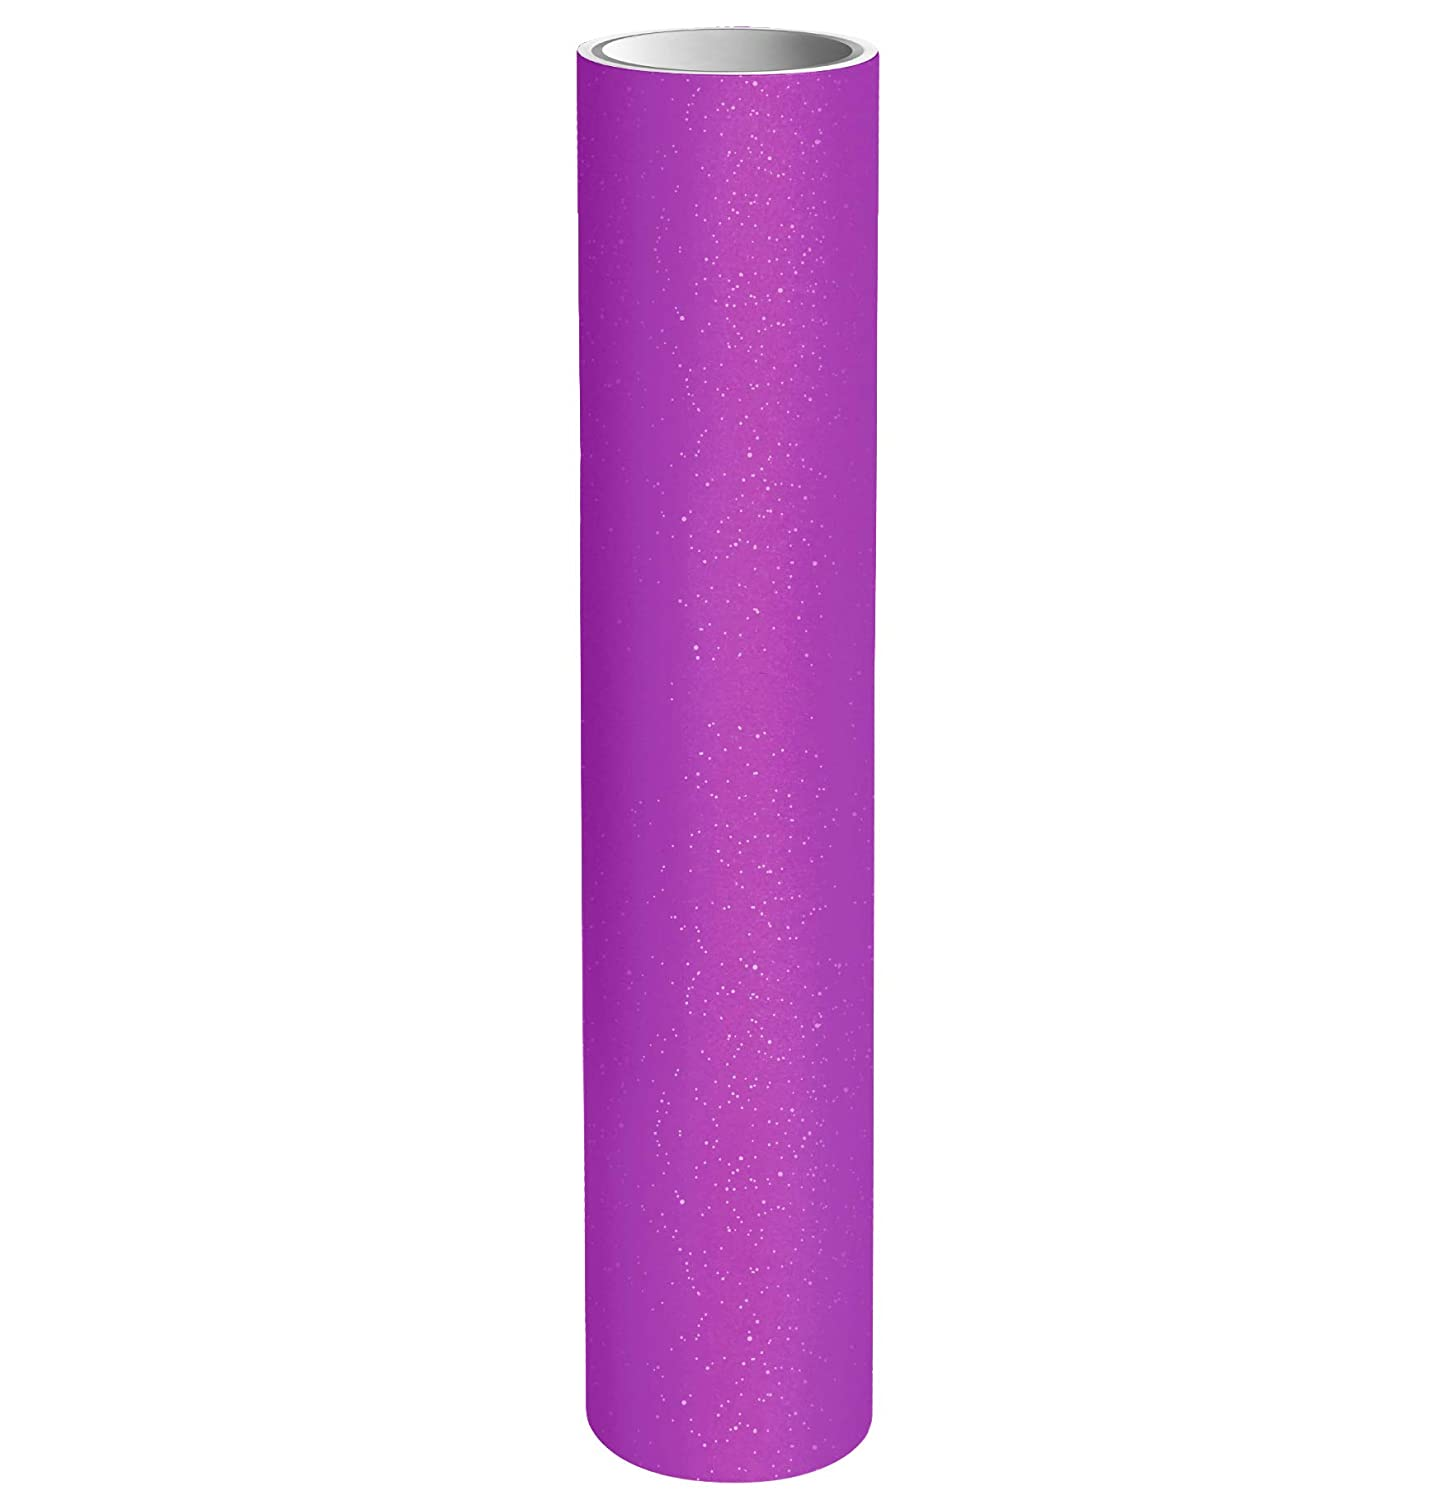 VViViD Purple Crystal Tint Frosted Automotive Taillight Air-Release Adhesive Vinyl Film 16 Inch by 4 Foot Roll Including Yellow Detailer Squeegee and 2 Black Felt Decals